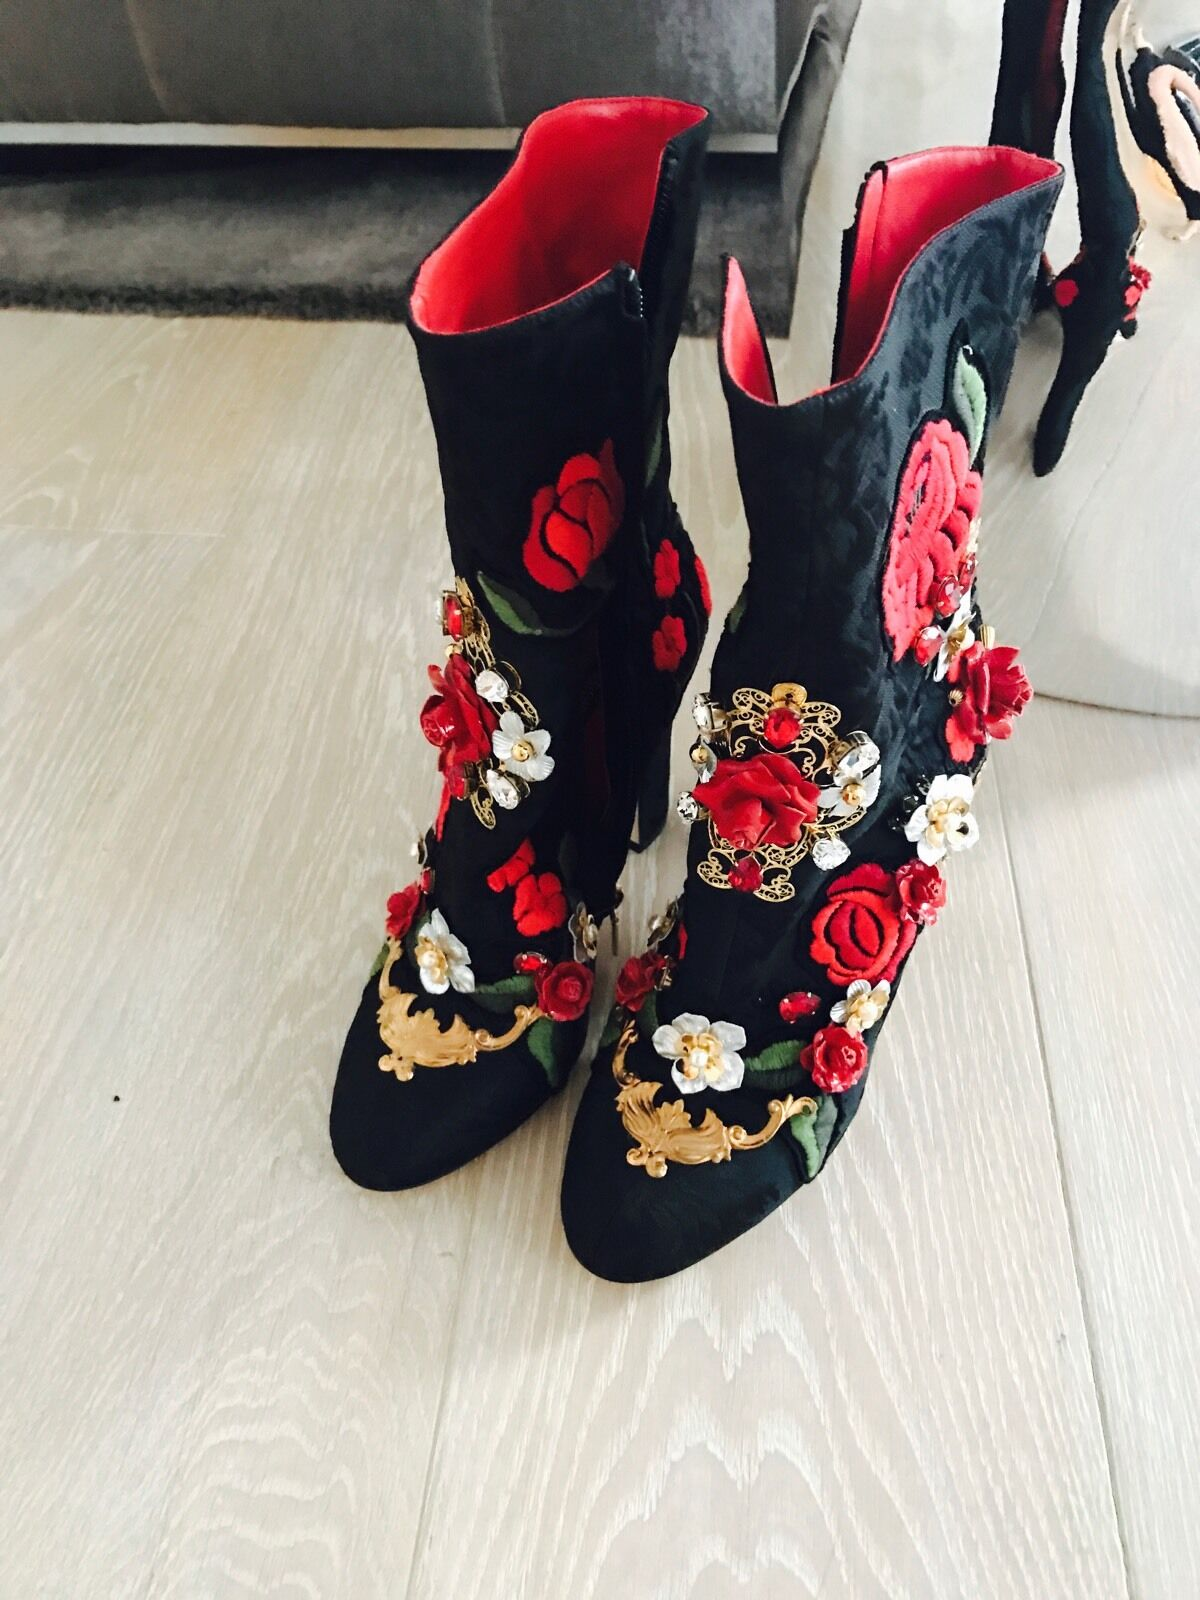 DOLCE & GABBANA Shoes Leather Roses Crystal Brocade Heel Boots EU40/us9